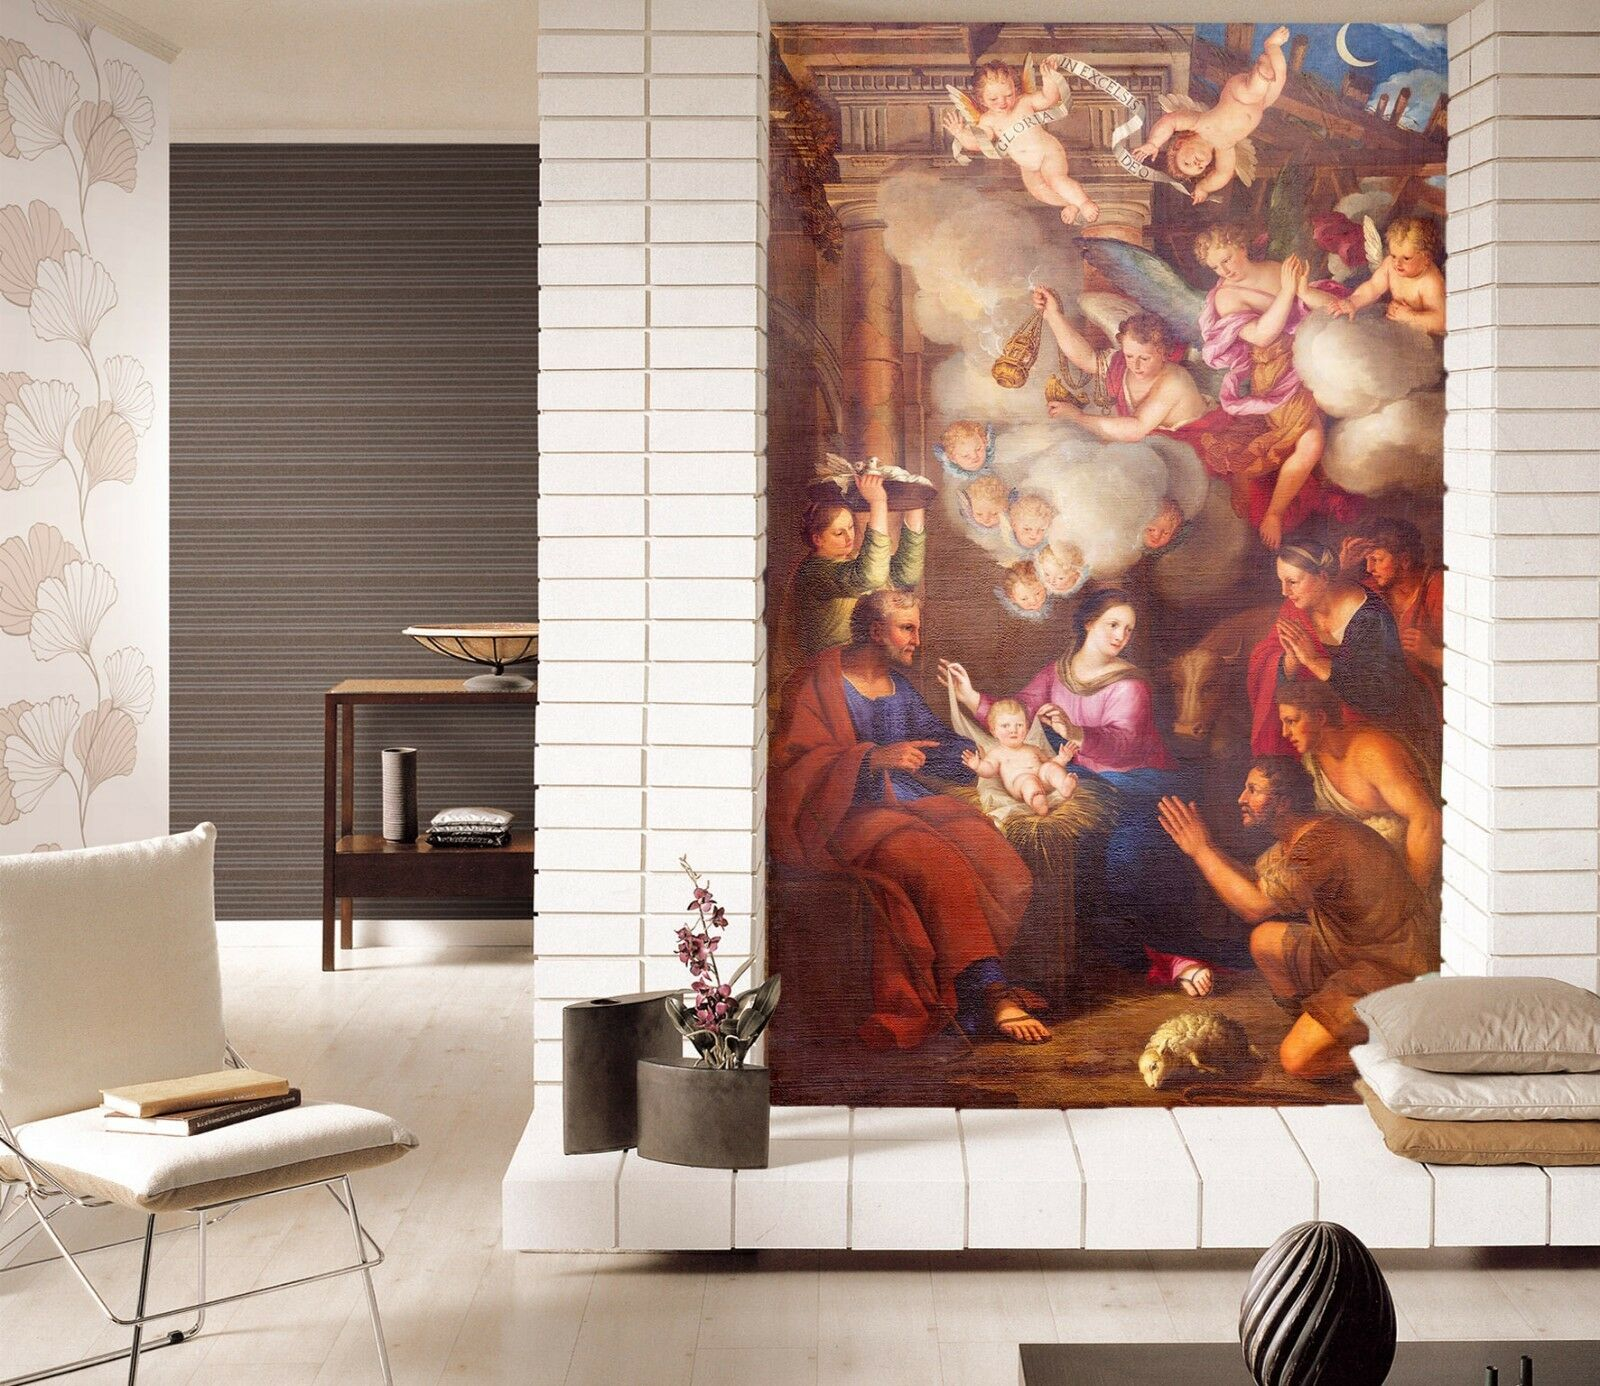 3D Artwork Oil Painting 41 Wall Paper Wall Print Decal Wall Deco Indoor Murals